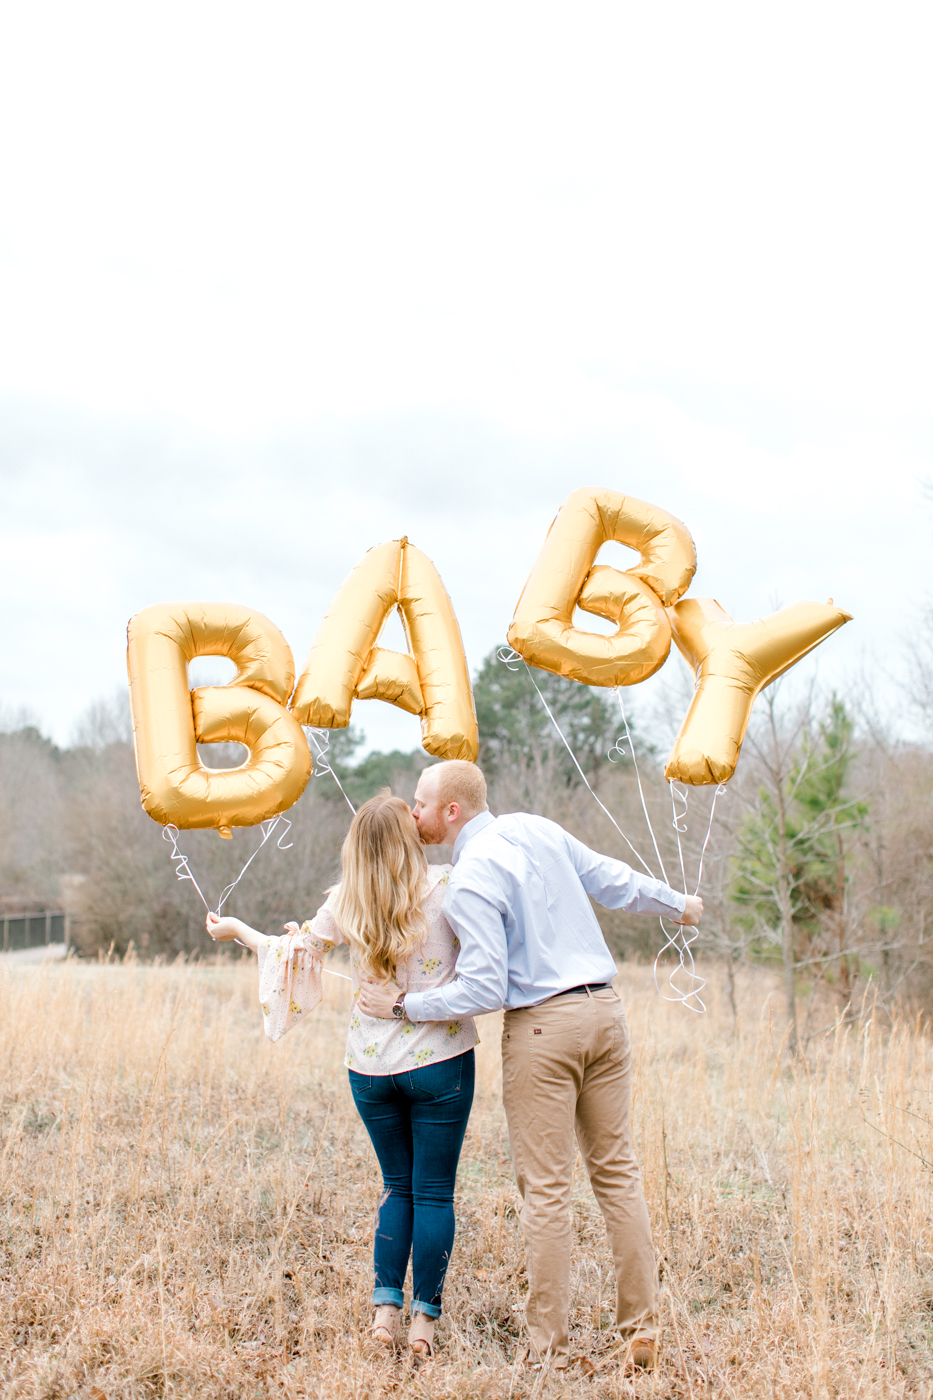 four corners photography best atlanta maternity photographer baby announcement gender reveal session bright and airy maternity session atlanta newborn photographer (29 of 32).jpg